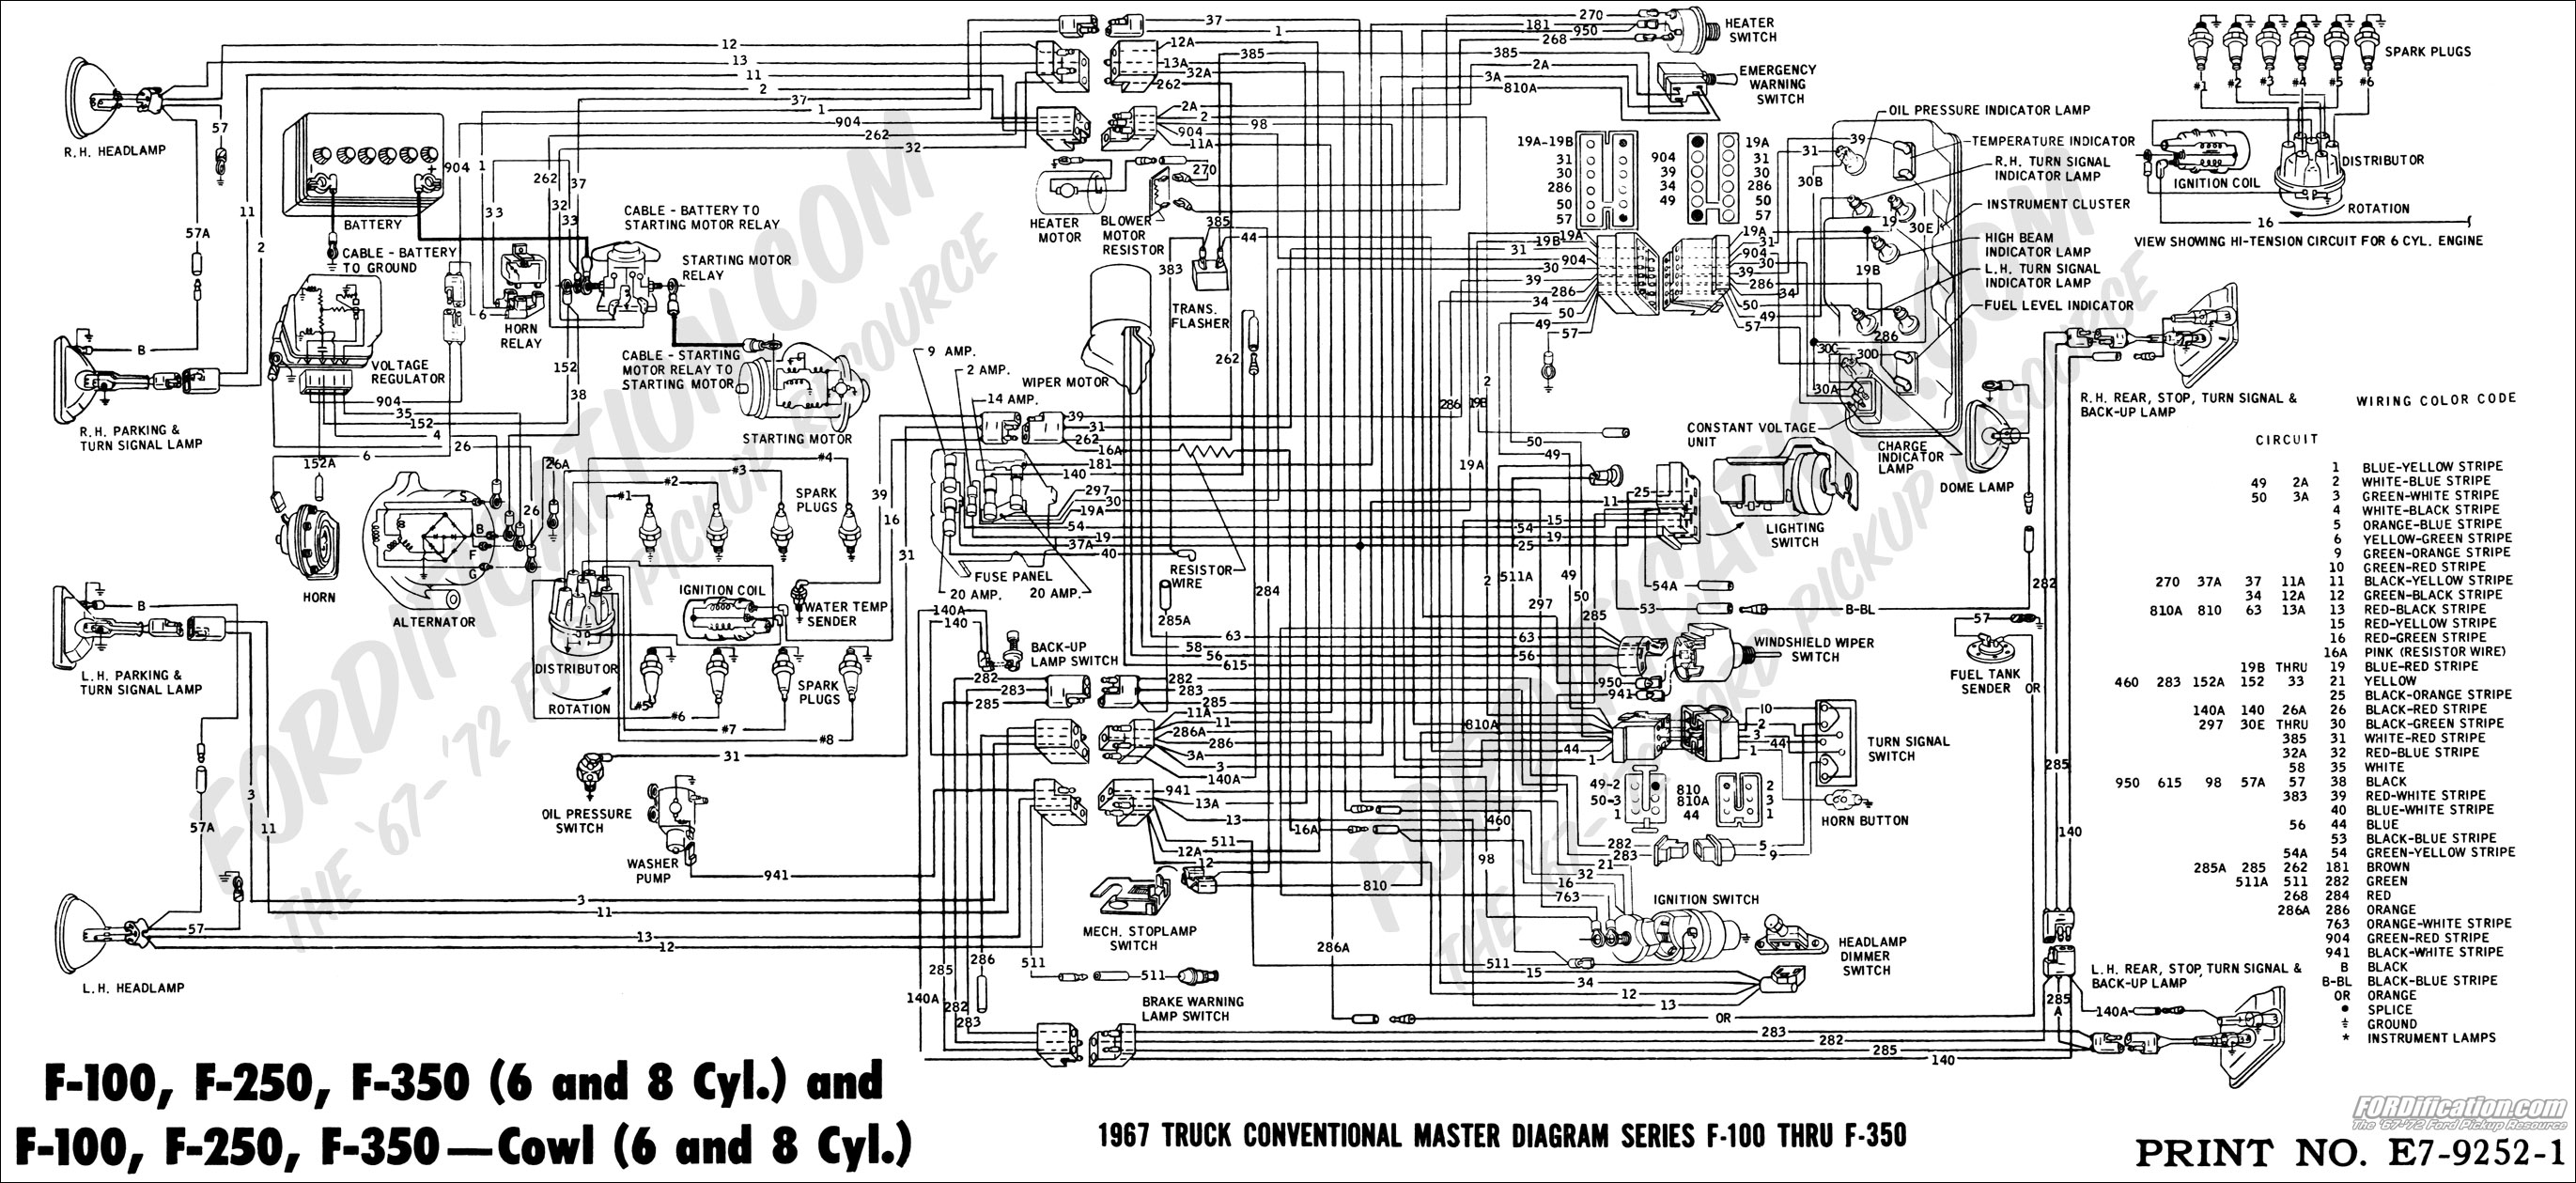 ford transmission wiring harness diagram ford truck technical drawings and schematics section h wiring 1967 master wiring diagram